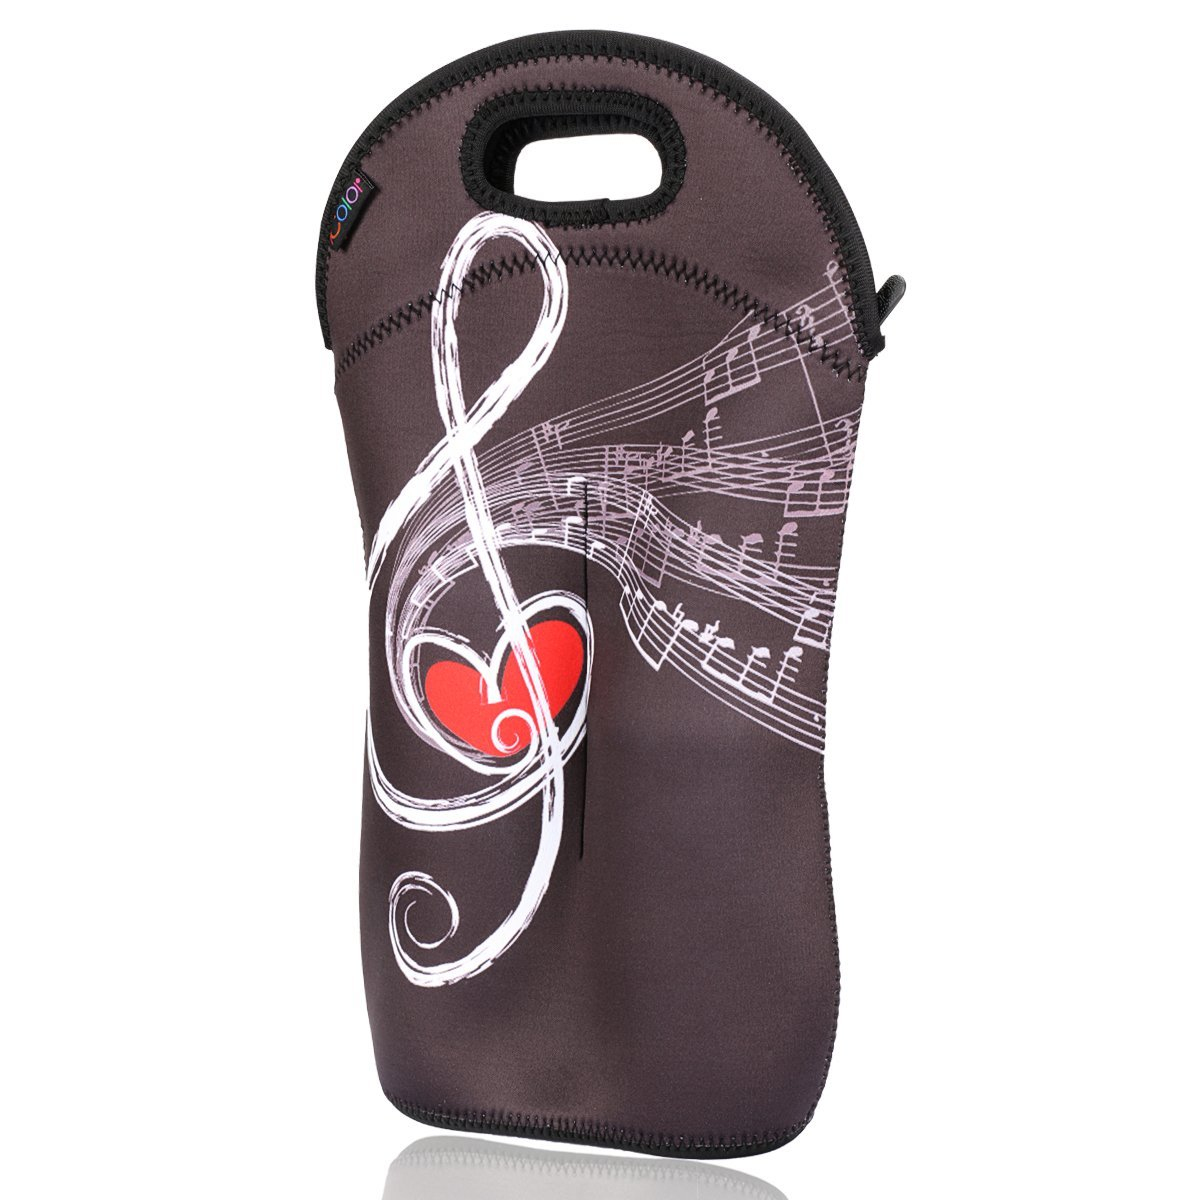 iColor insulated Wine bag tote Holder Covers for Champagne, Wine, Beer Bottles, Beverages, Containers, Soft Drinks, Sodas, Sports Water Bottles, Baby Bottles, Make of thick Neoprene, Zipper Closure, Machine-Washable Wine bag-01